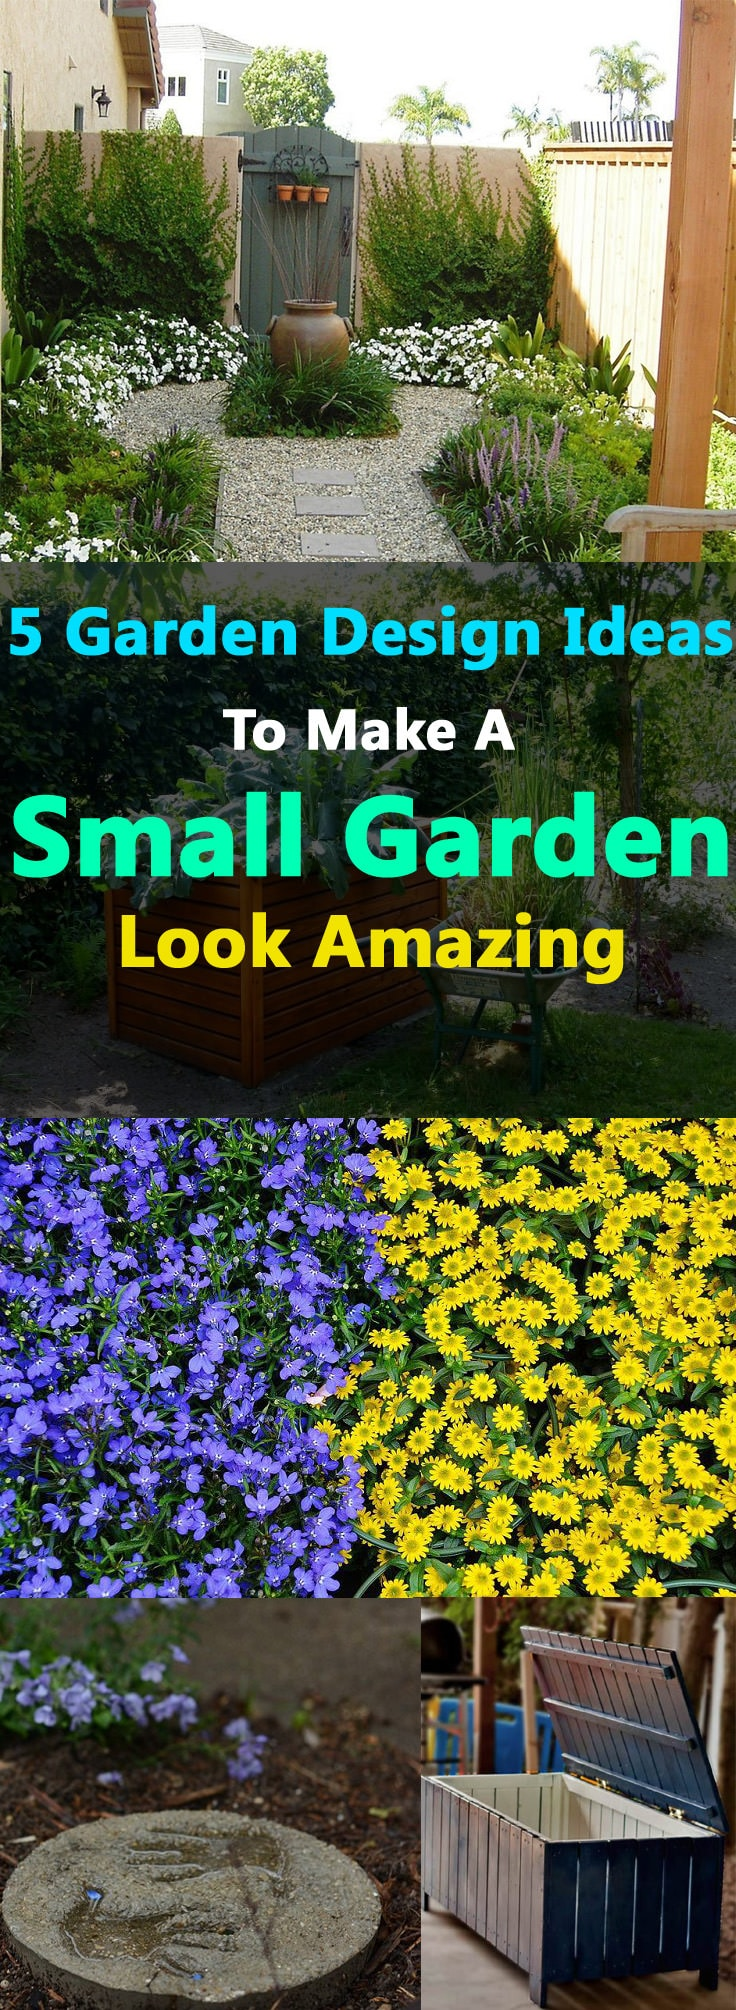 5 garden design ideas to make a small garden look amazing for A garden design